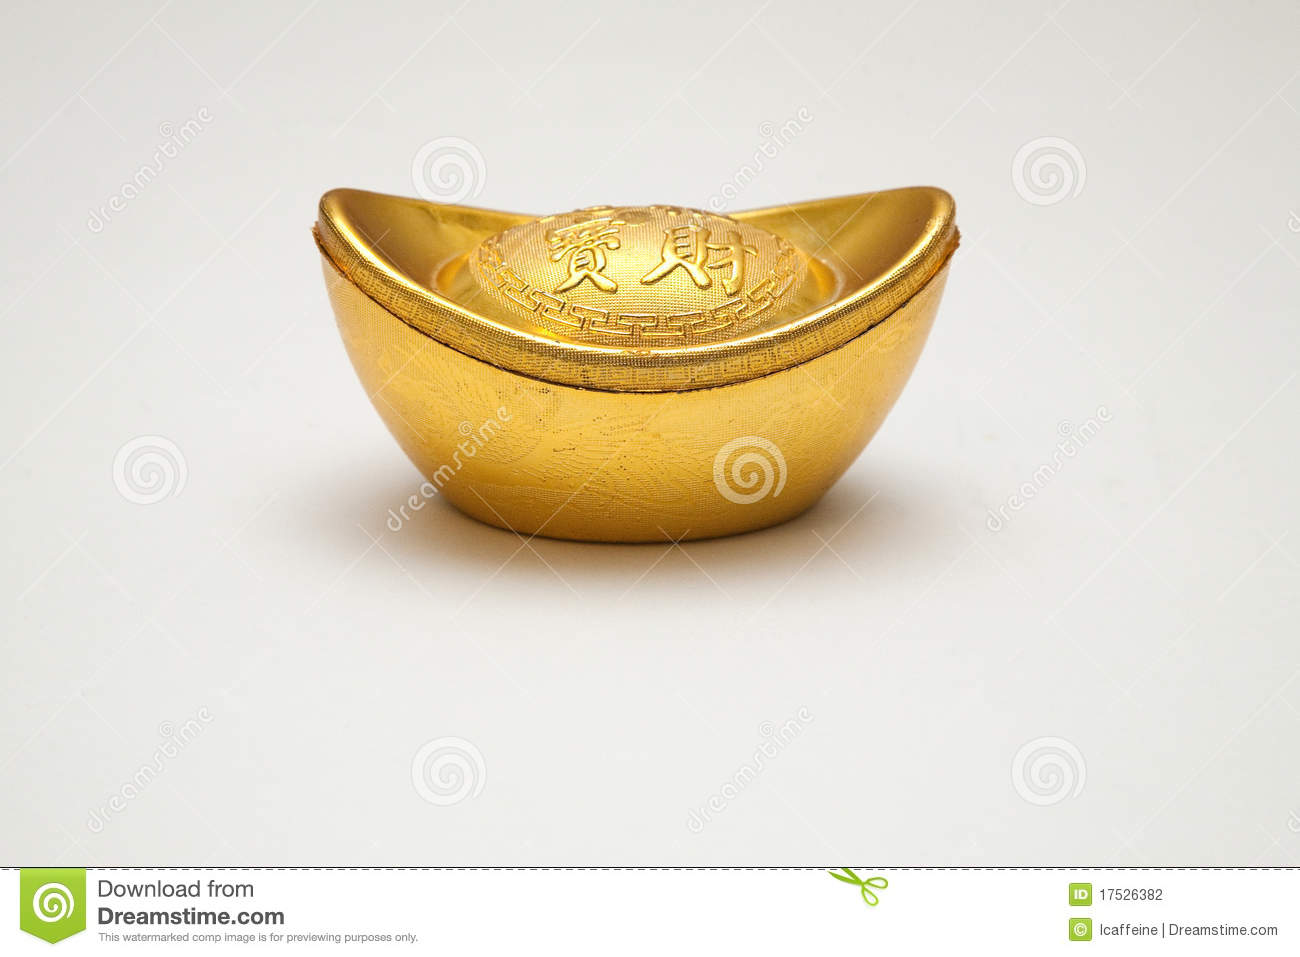 Chinese gold symbol stock photo image of concept carry 17526382 chinese gold symbol biocorpaavc Choice Image